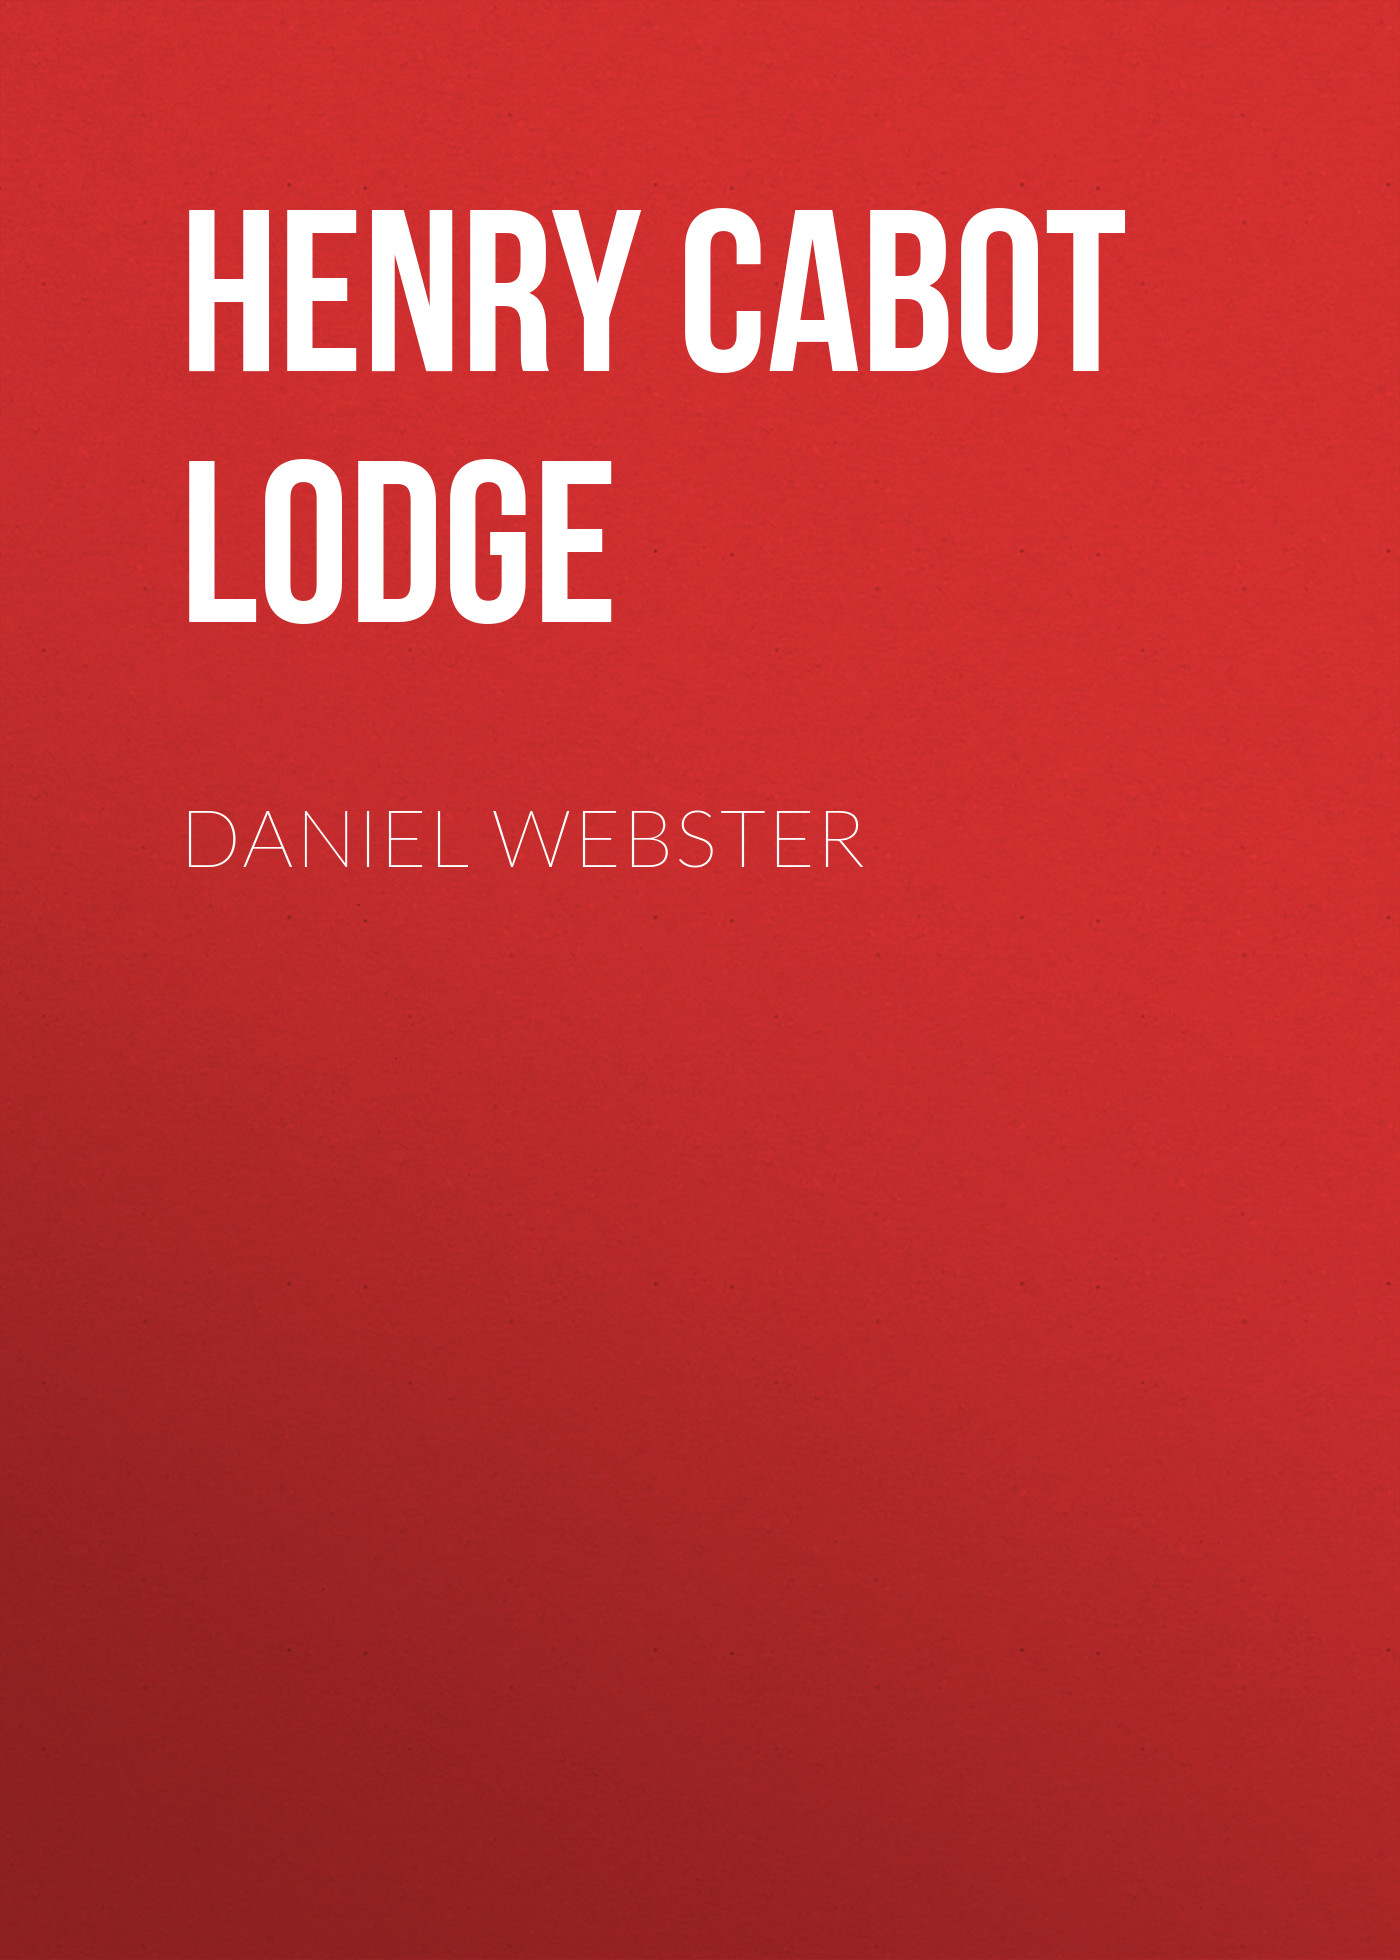 Henry Cabot Lodge Daniel Webster все цены